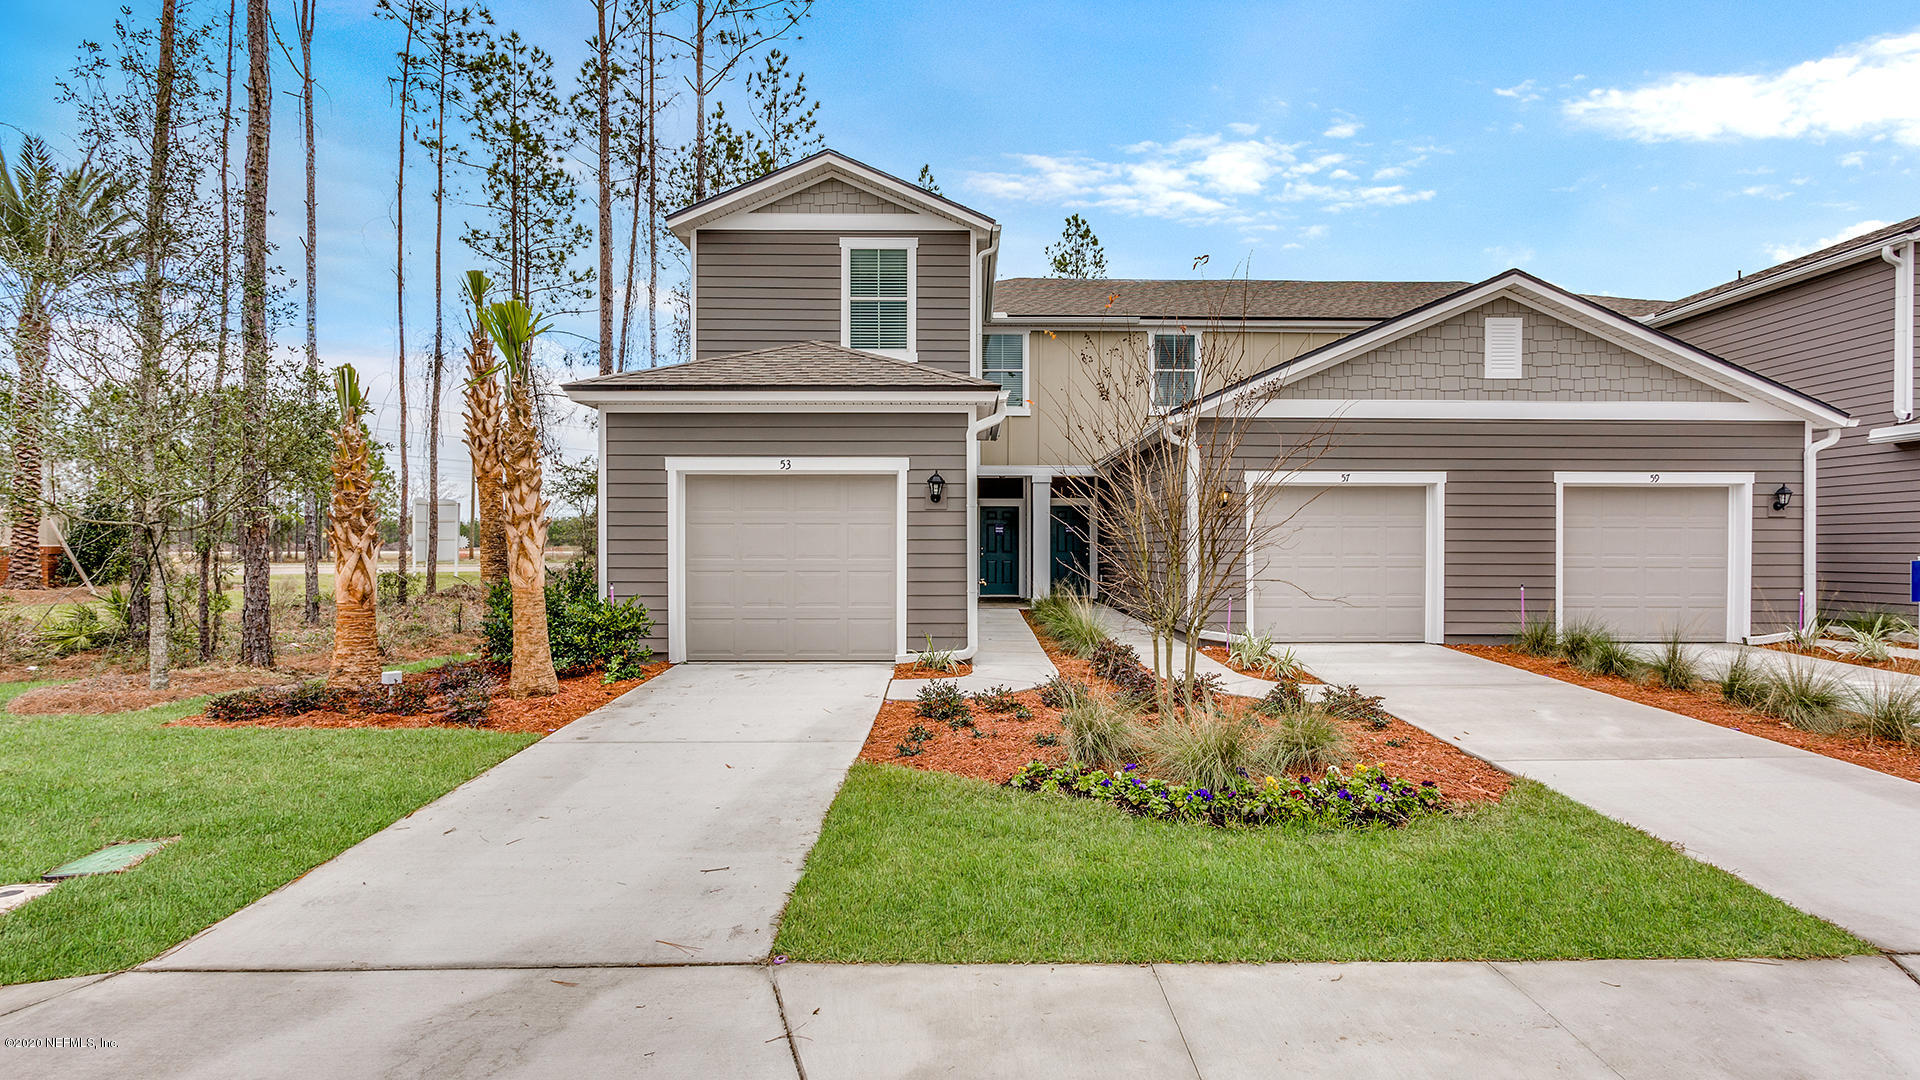 61 SCOTCH PEBBLE, ST JOHNS, FLORIDA 32259, 3 Bedrooms Bedrooms, ,2 BathroomsBathrooms,Residential,For sale,SCOTCH PEBBLE,1080998